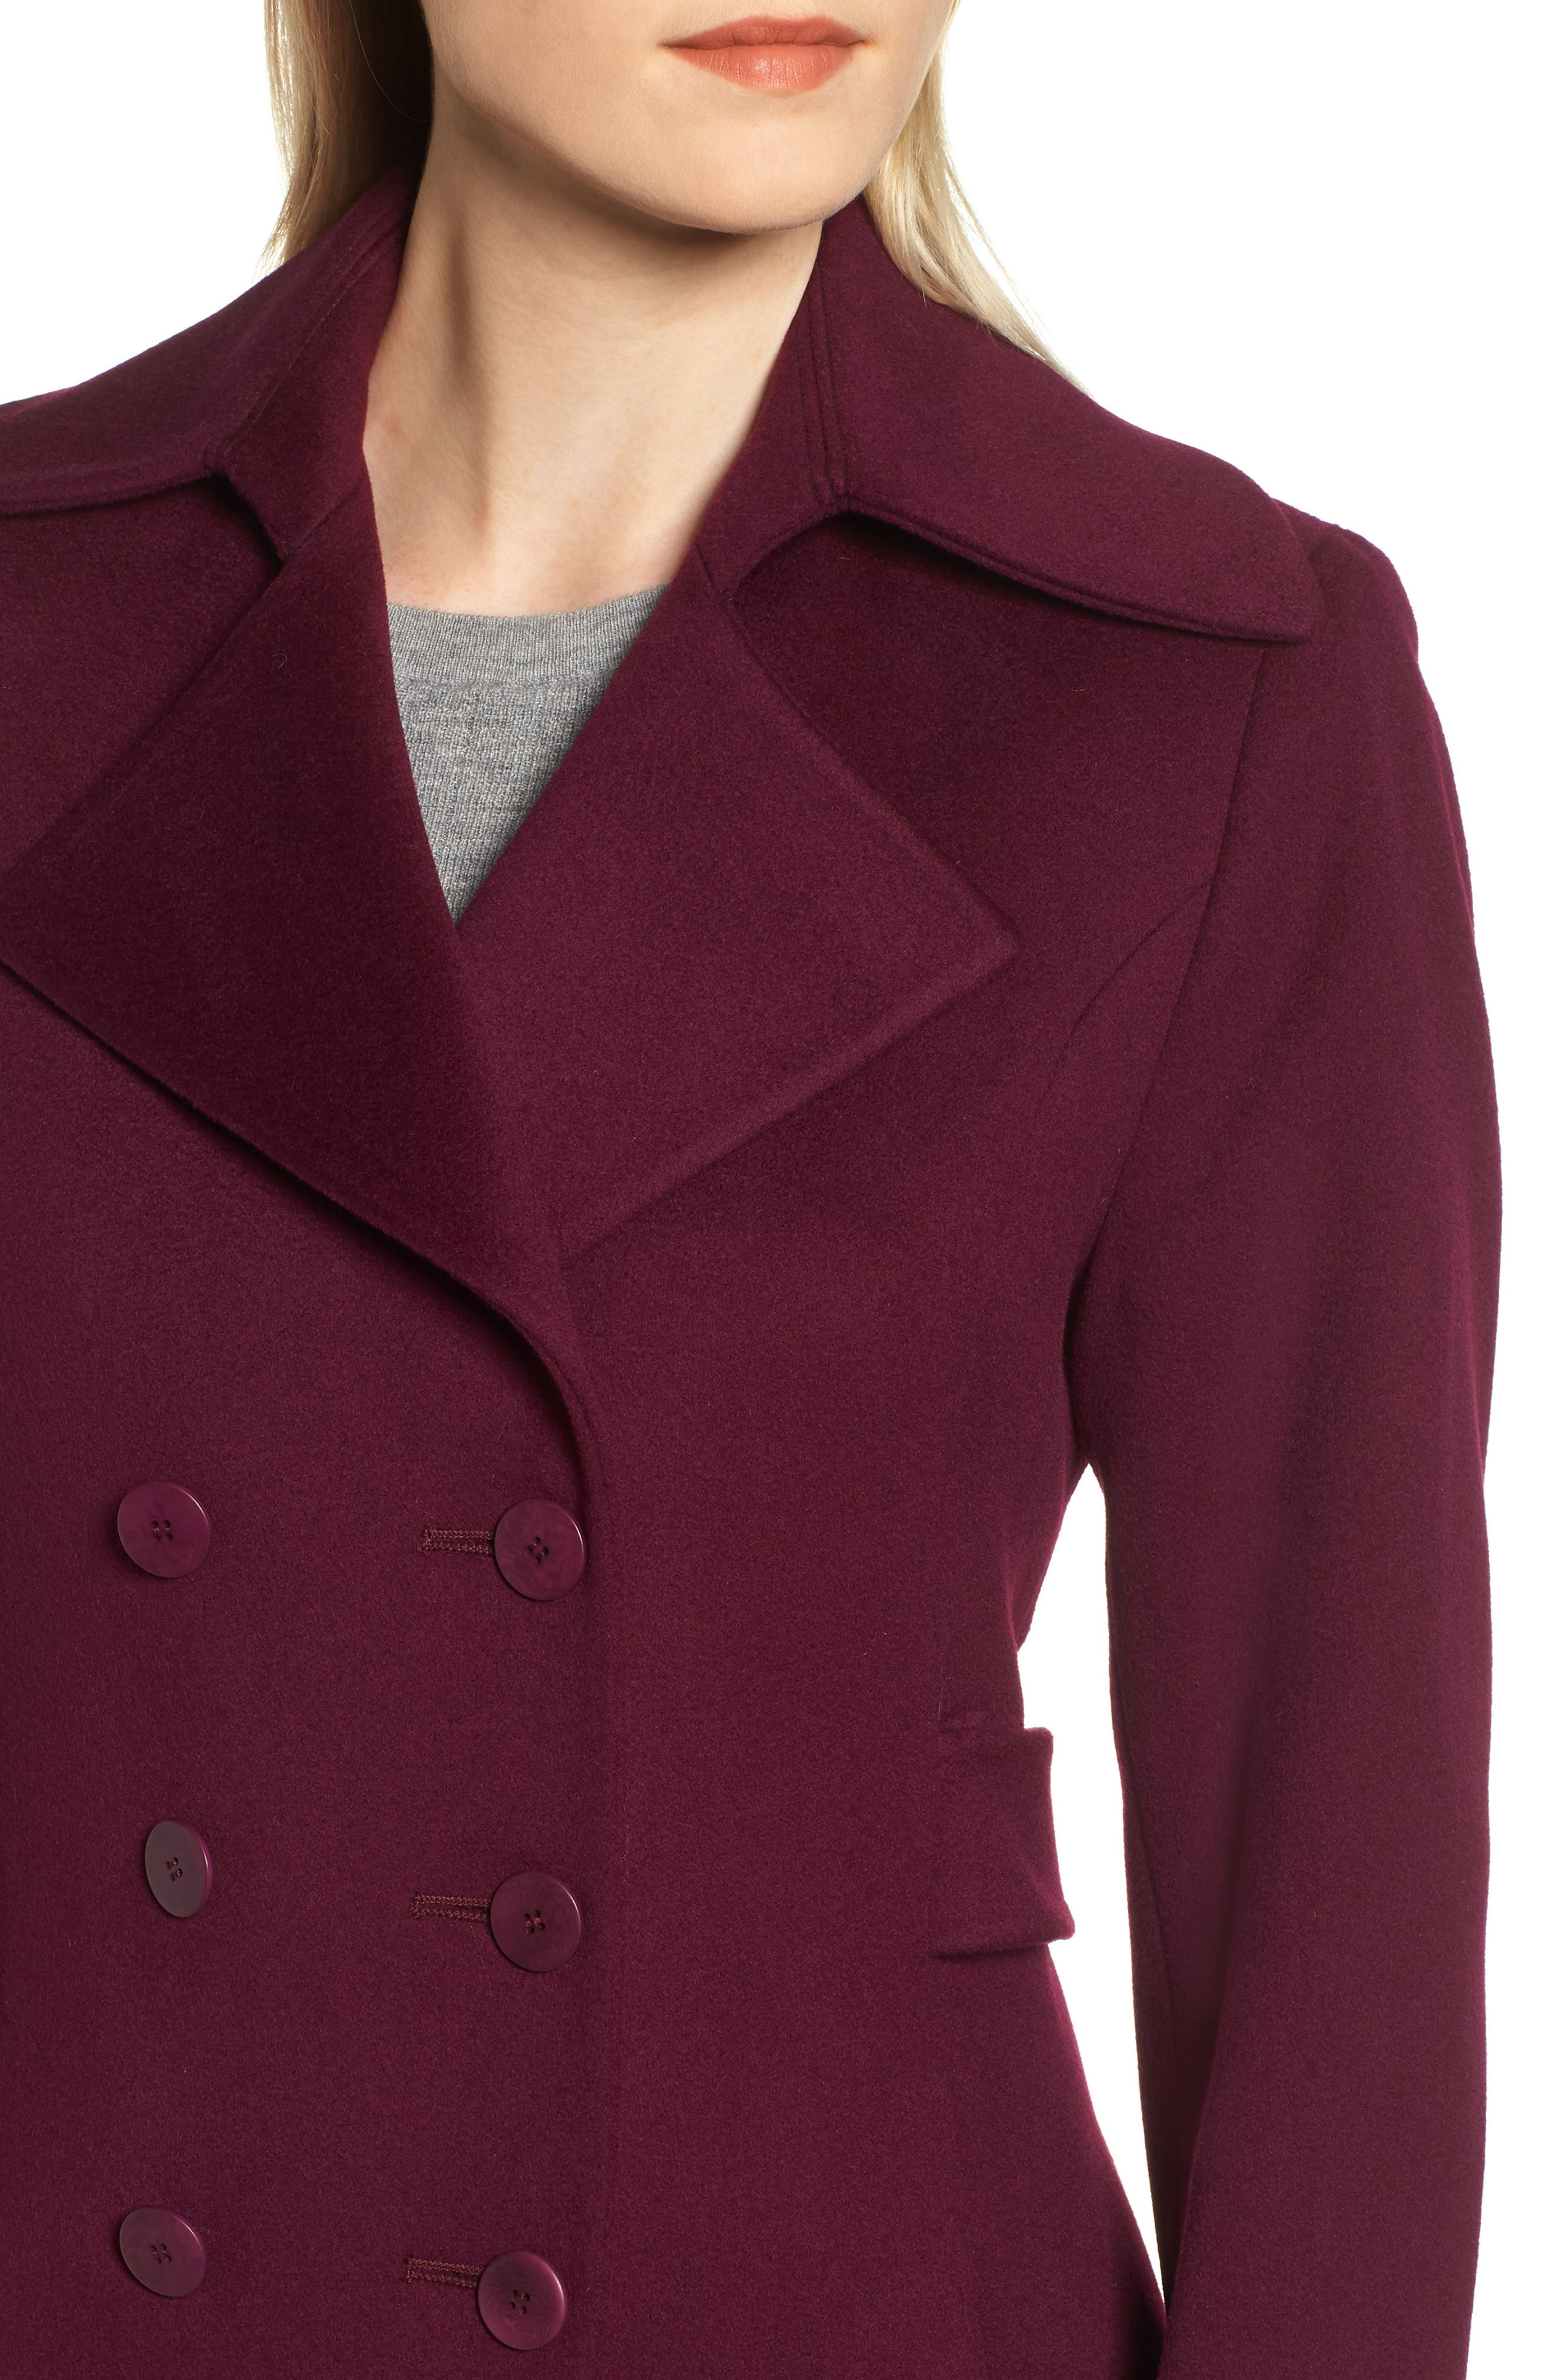 Double Breasted Loro Piana Wool Coat,                             Alternate thumbnail 4, color,                             600